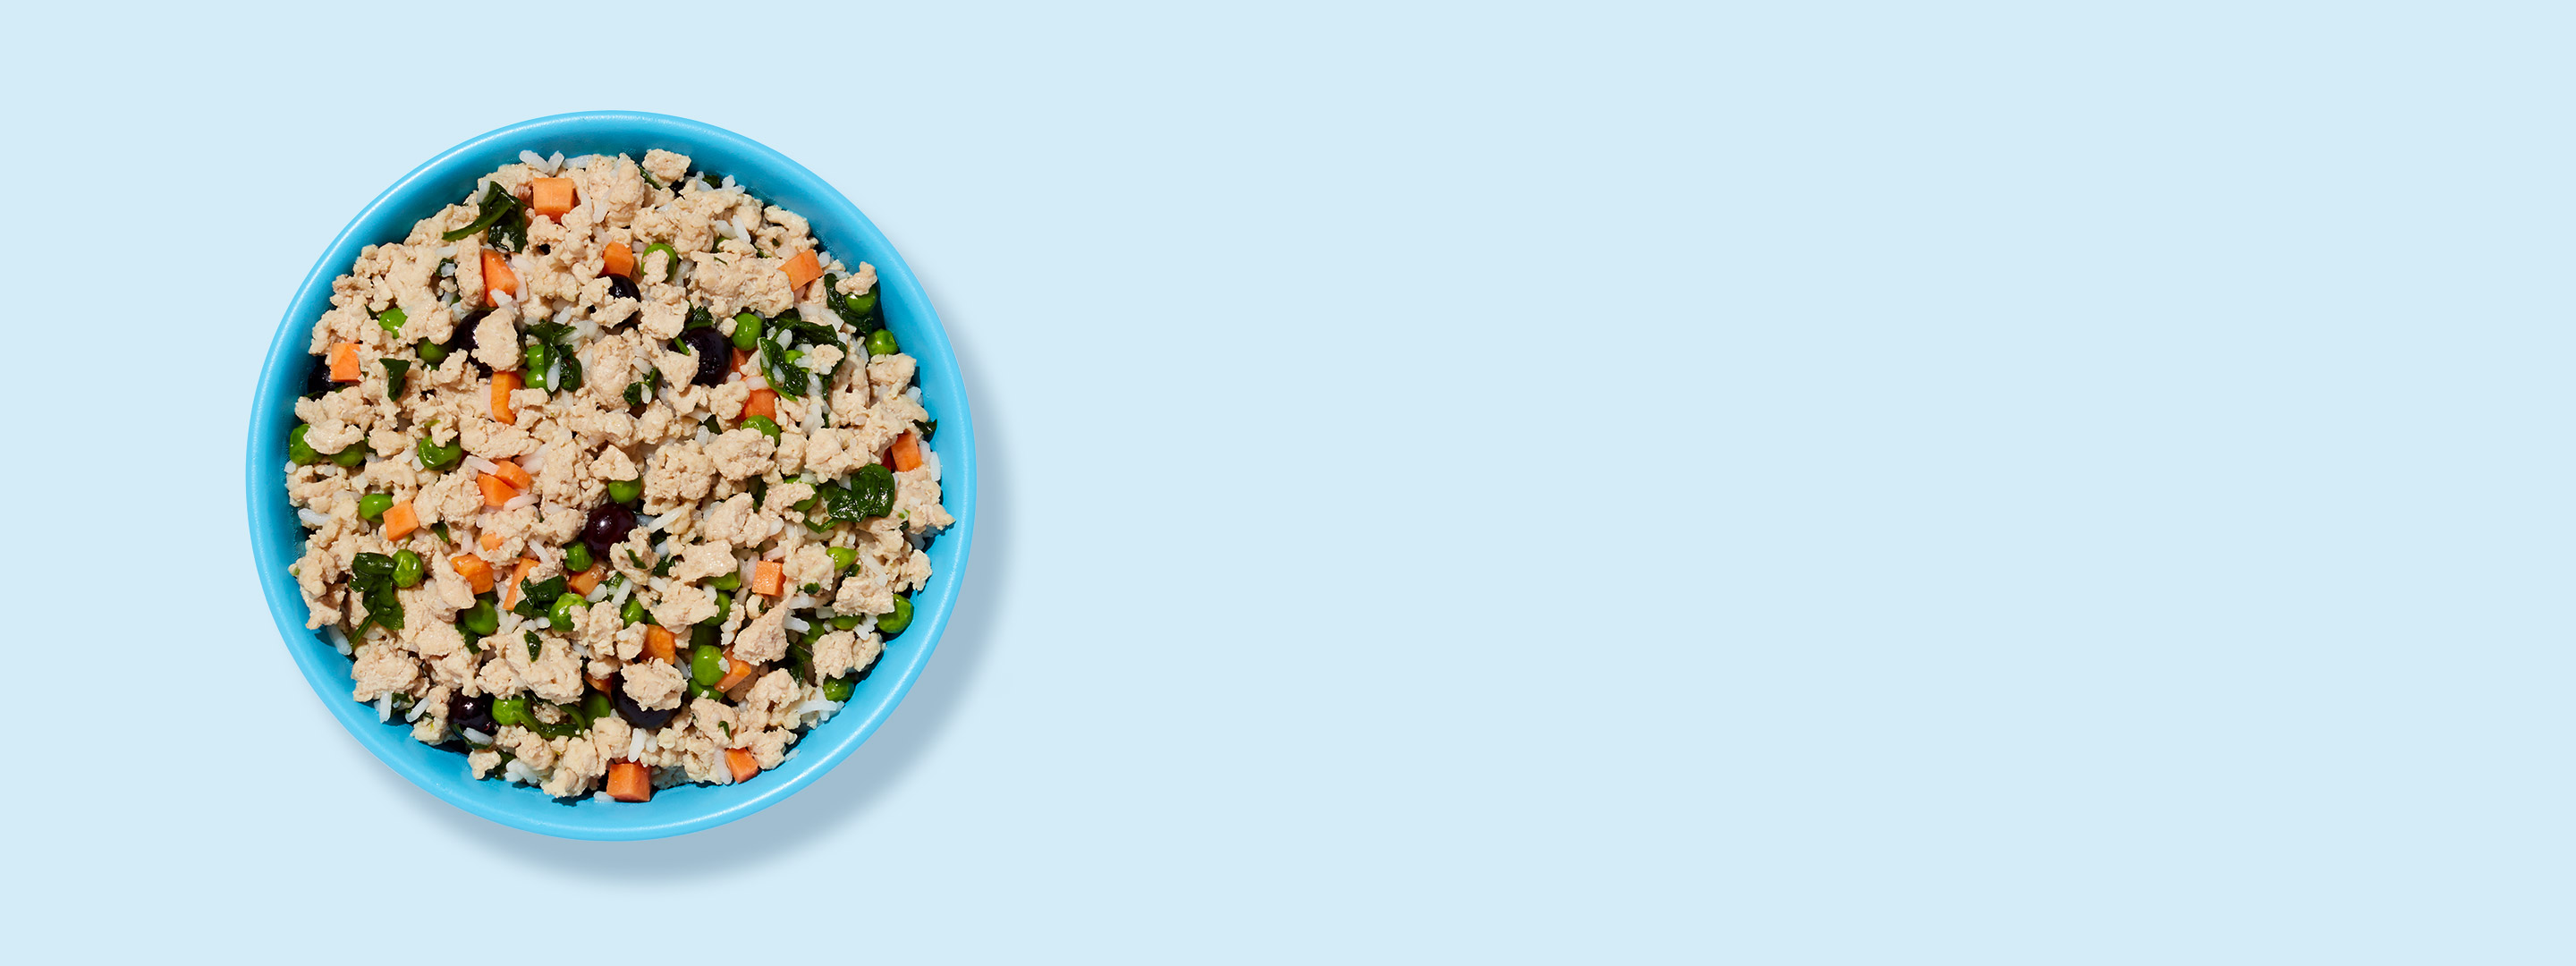 A bowl of Ollie's fresh dog food chicken recipe.